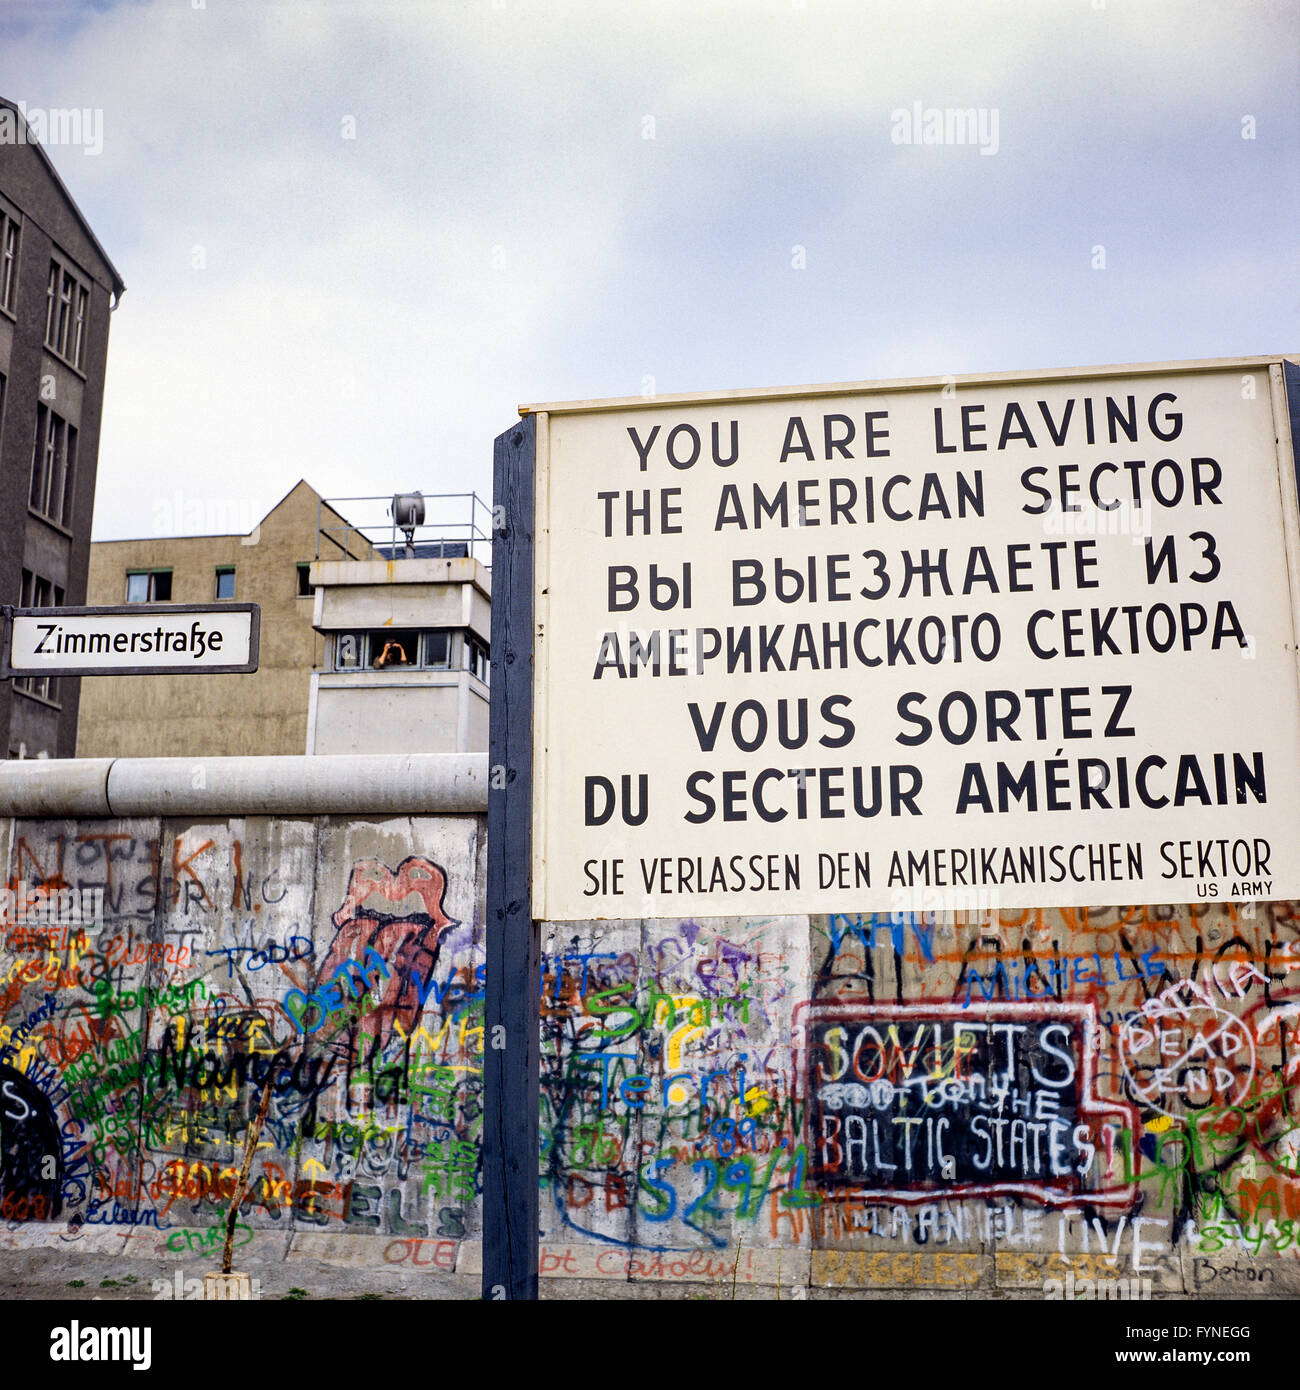 August 1986, leaving American sector warning sign, Berlin Wall graffitis, East Berlin watchtower, Zimmerstrasse Stock Photo